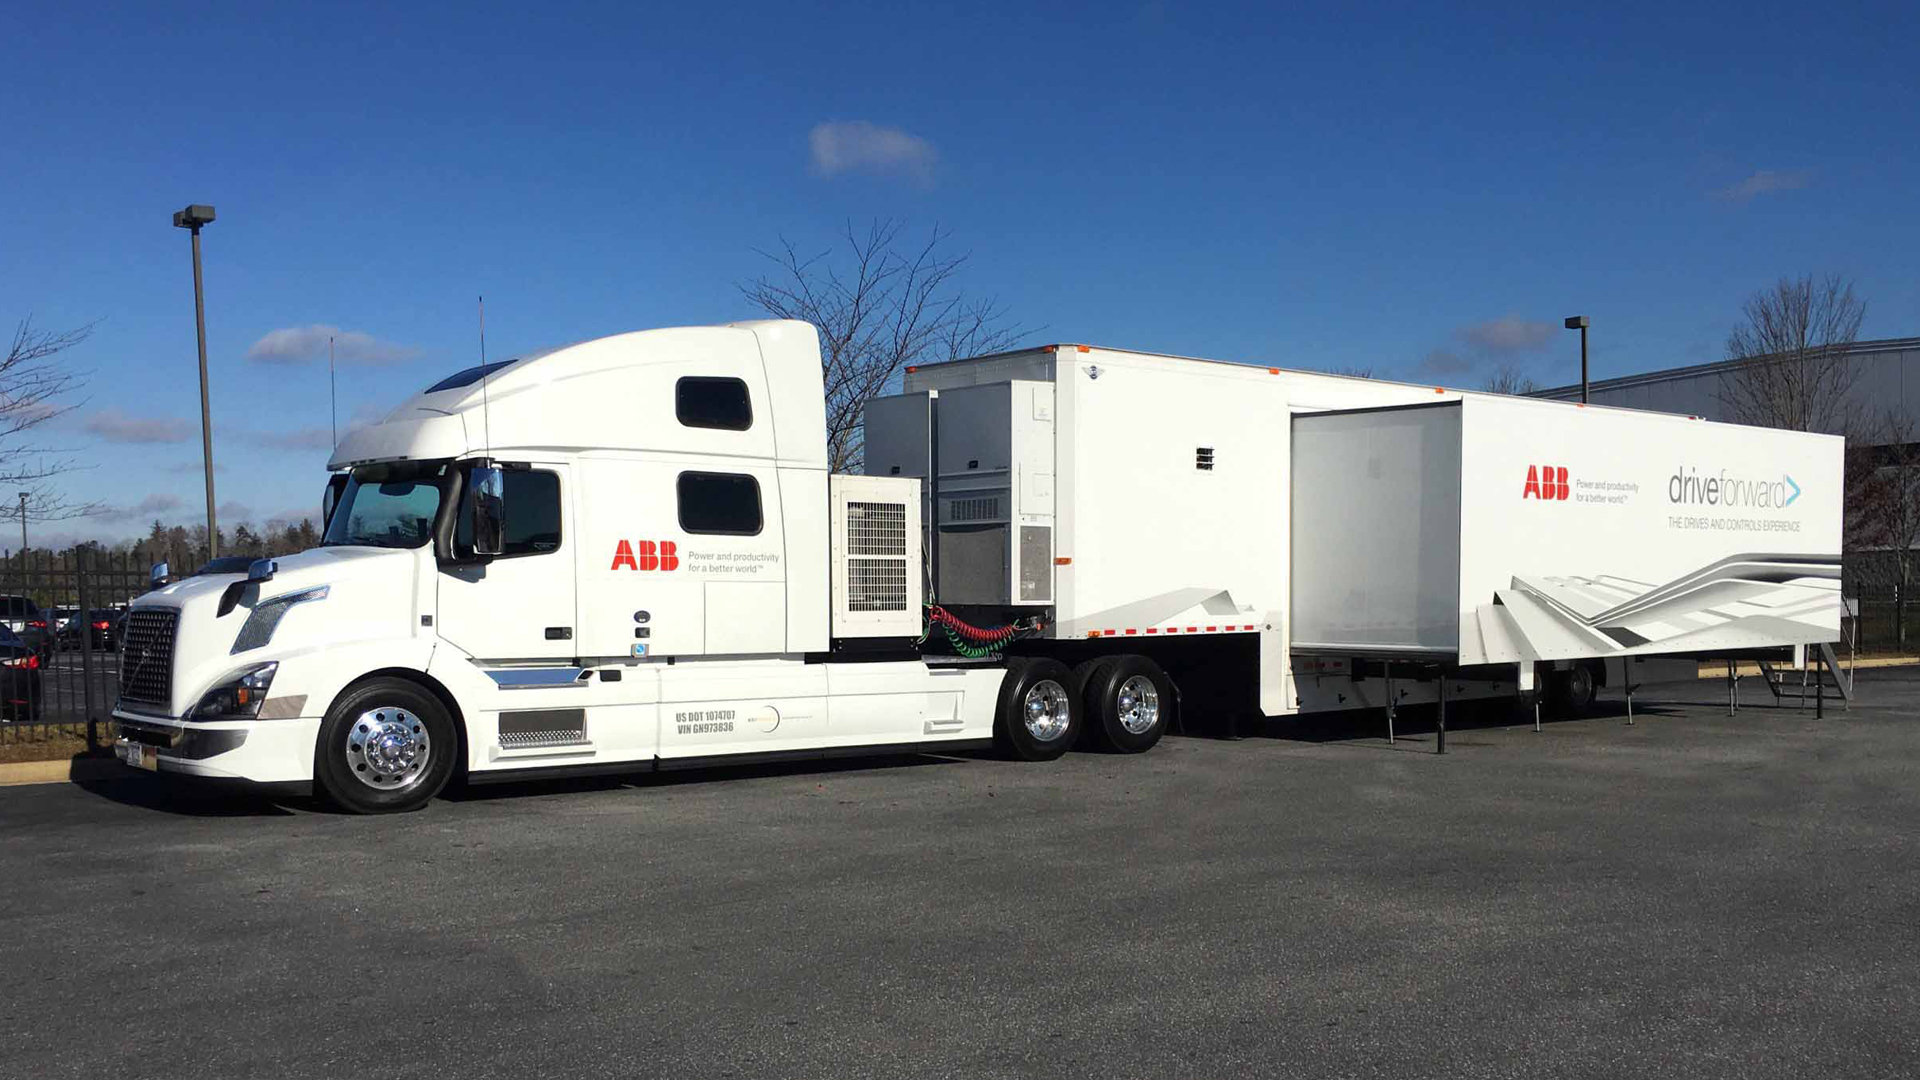 ABB MOBILE ROADSHOW